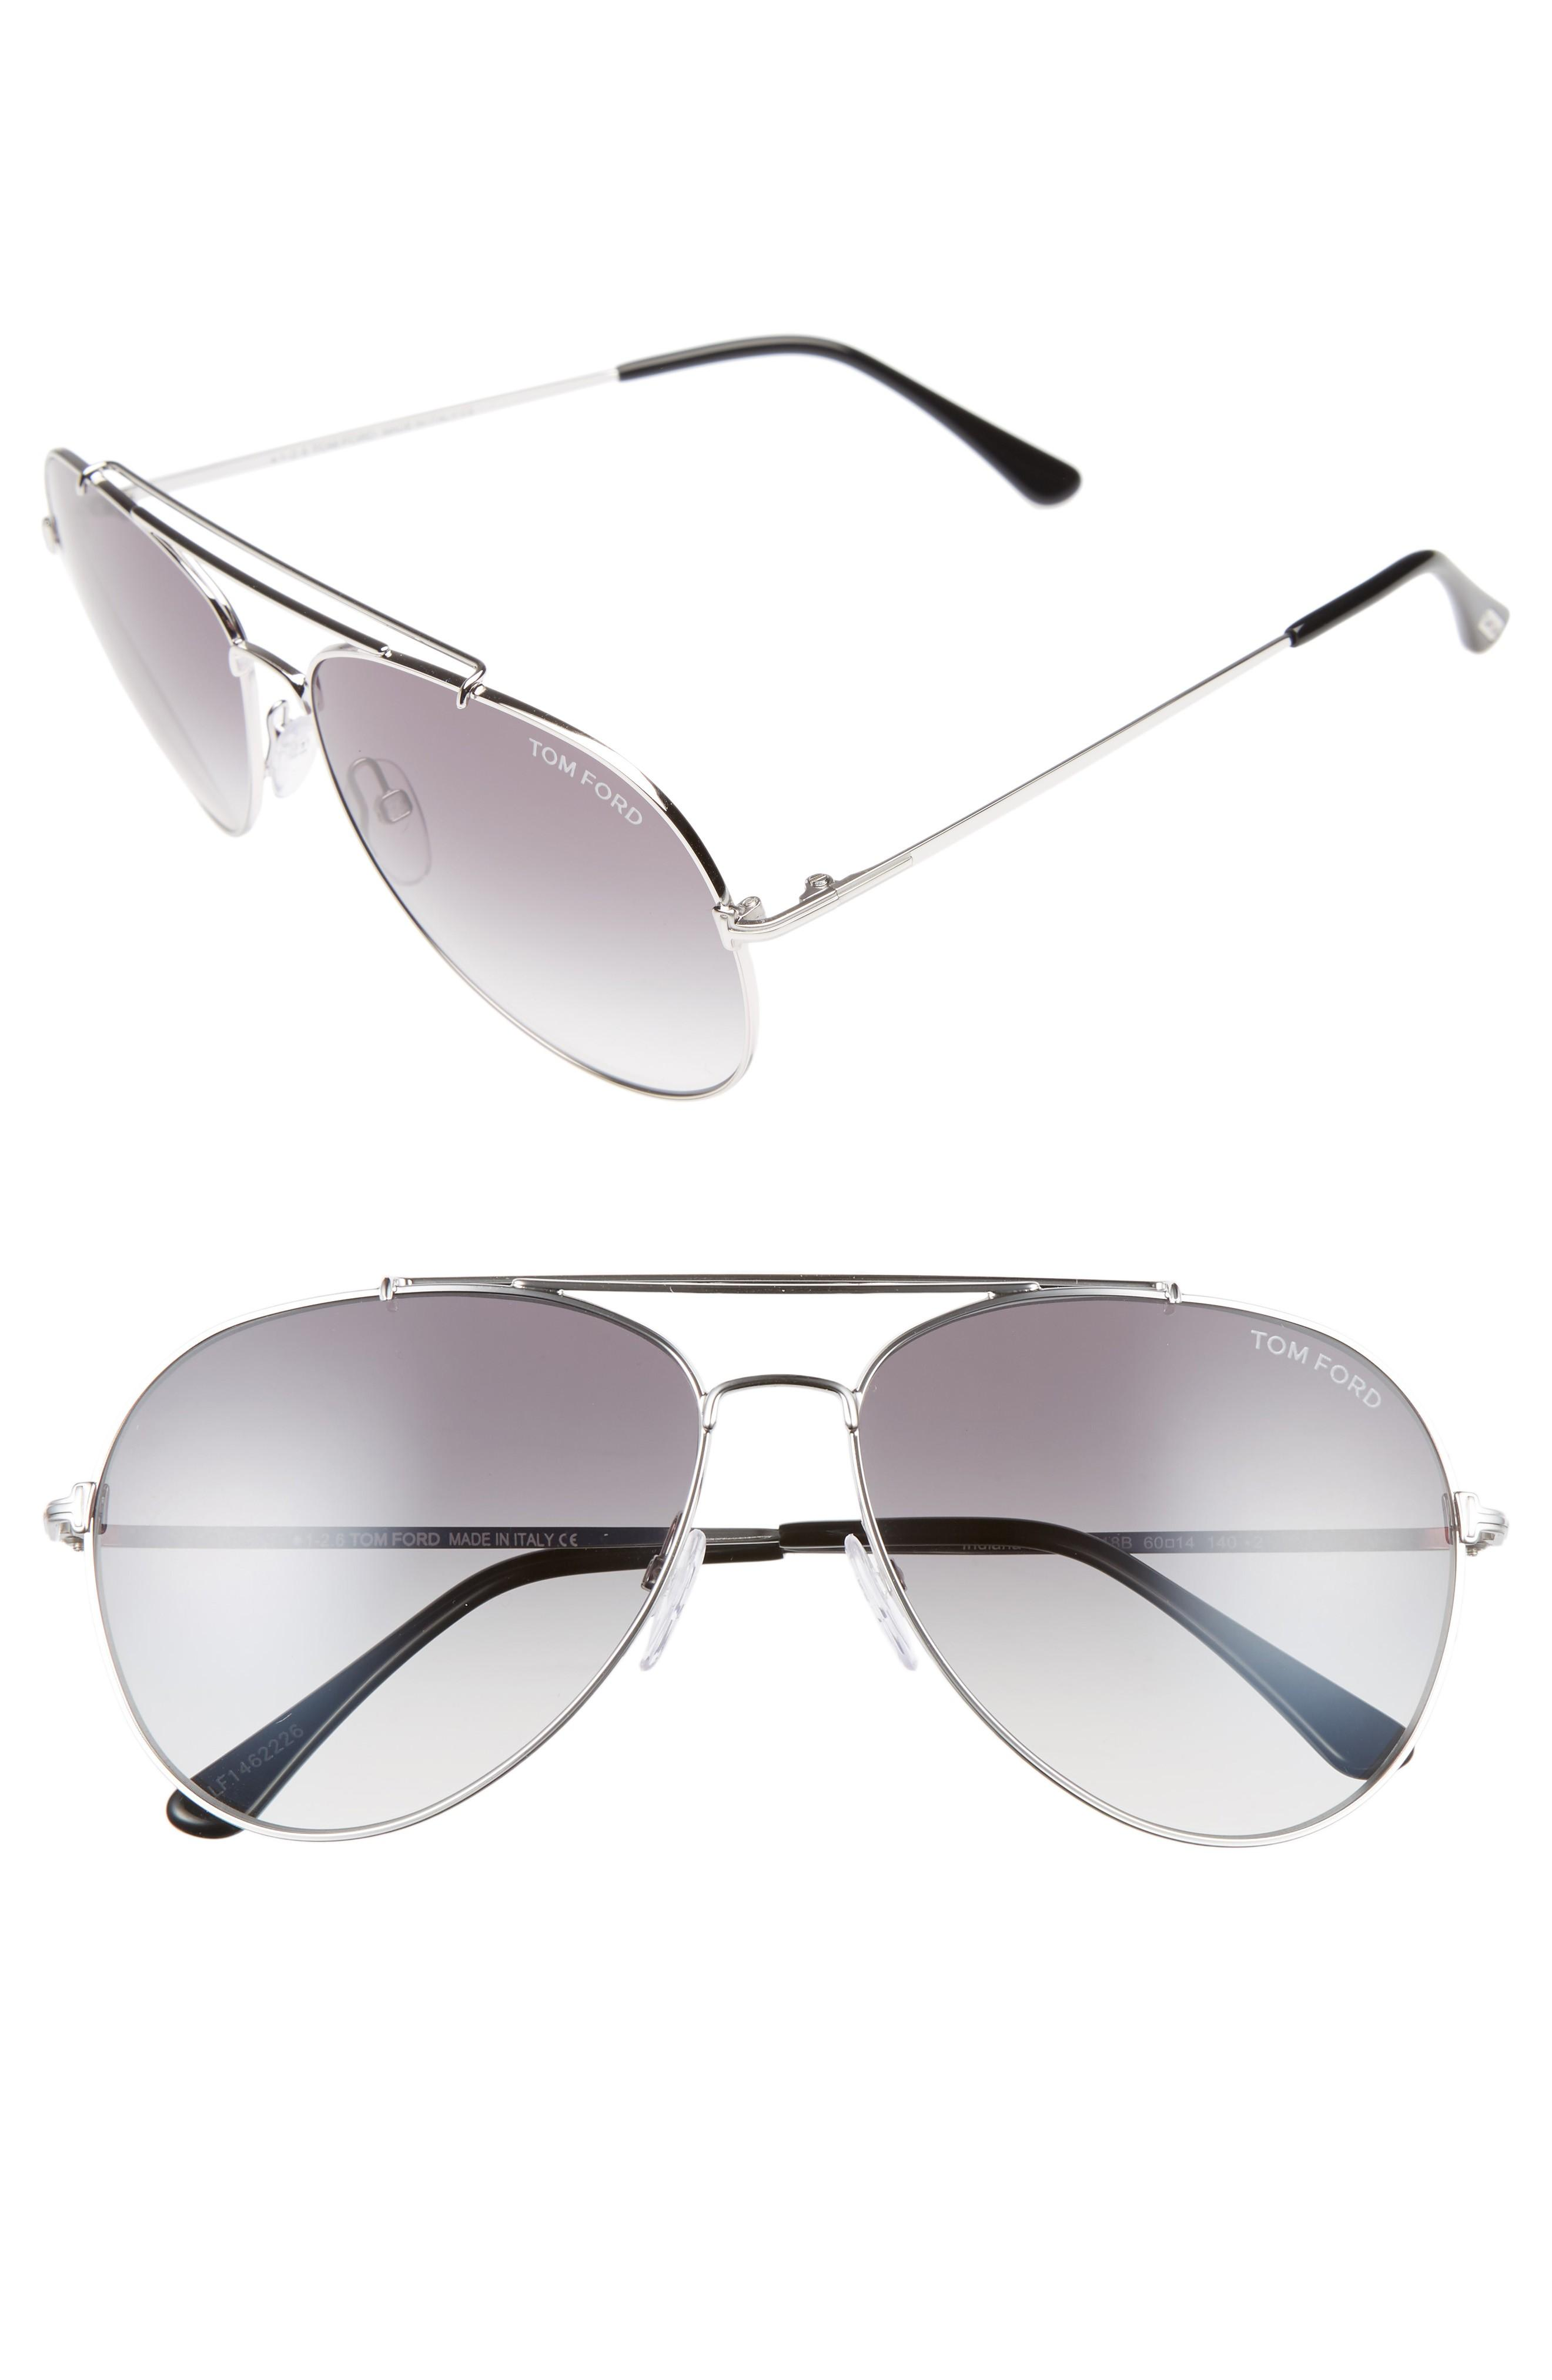 d5f63b0b2f34 Tom Ford Indiana 60Mm Aviator Sunglasses - Rhodium  Black  Gradient Smoke